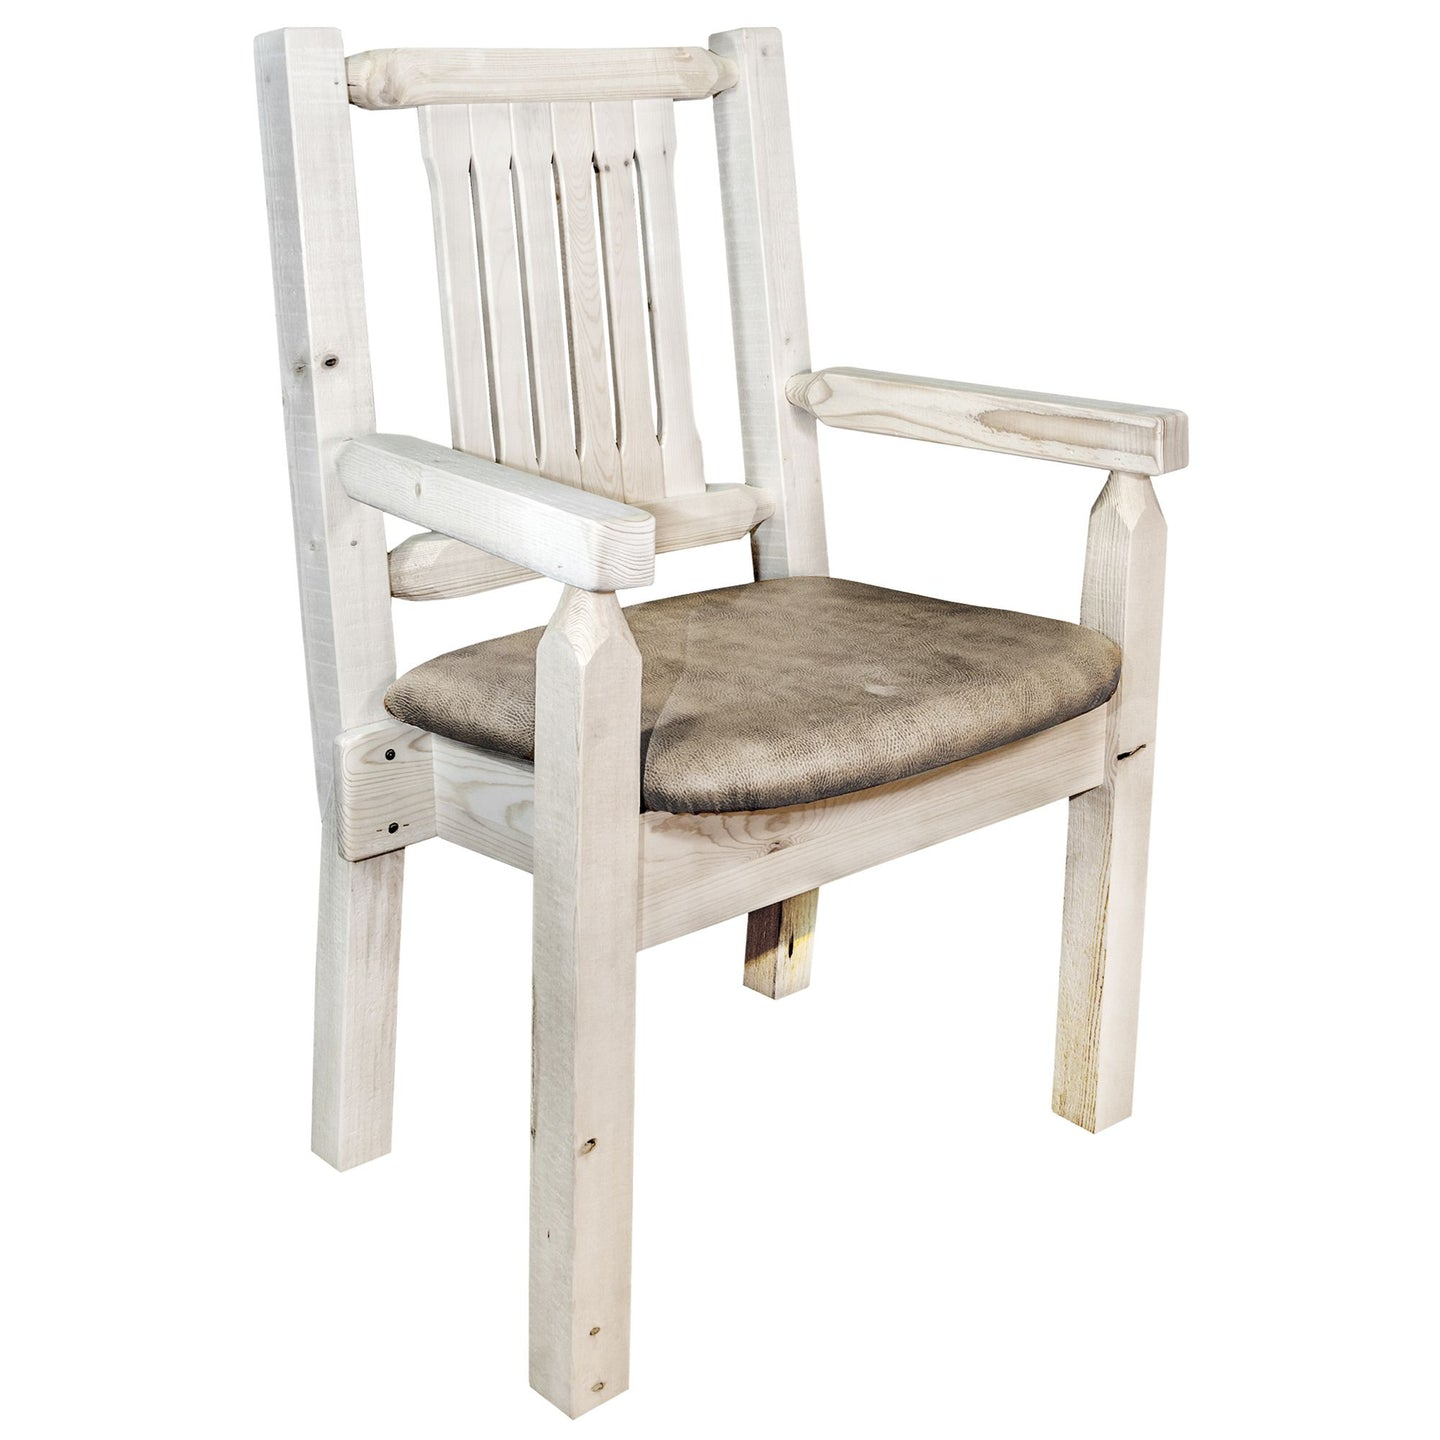 Homestead Rustic Captain's Chair w. Upholstered Seat - Buckskin